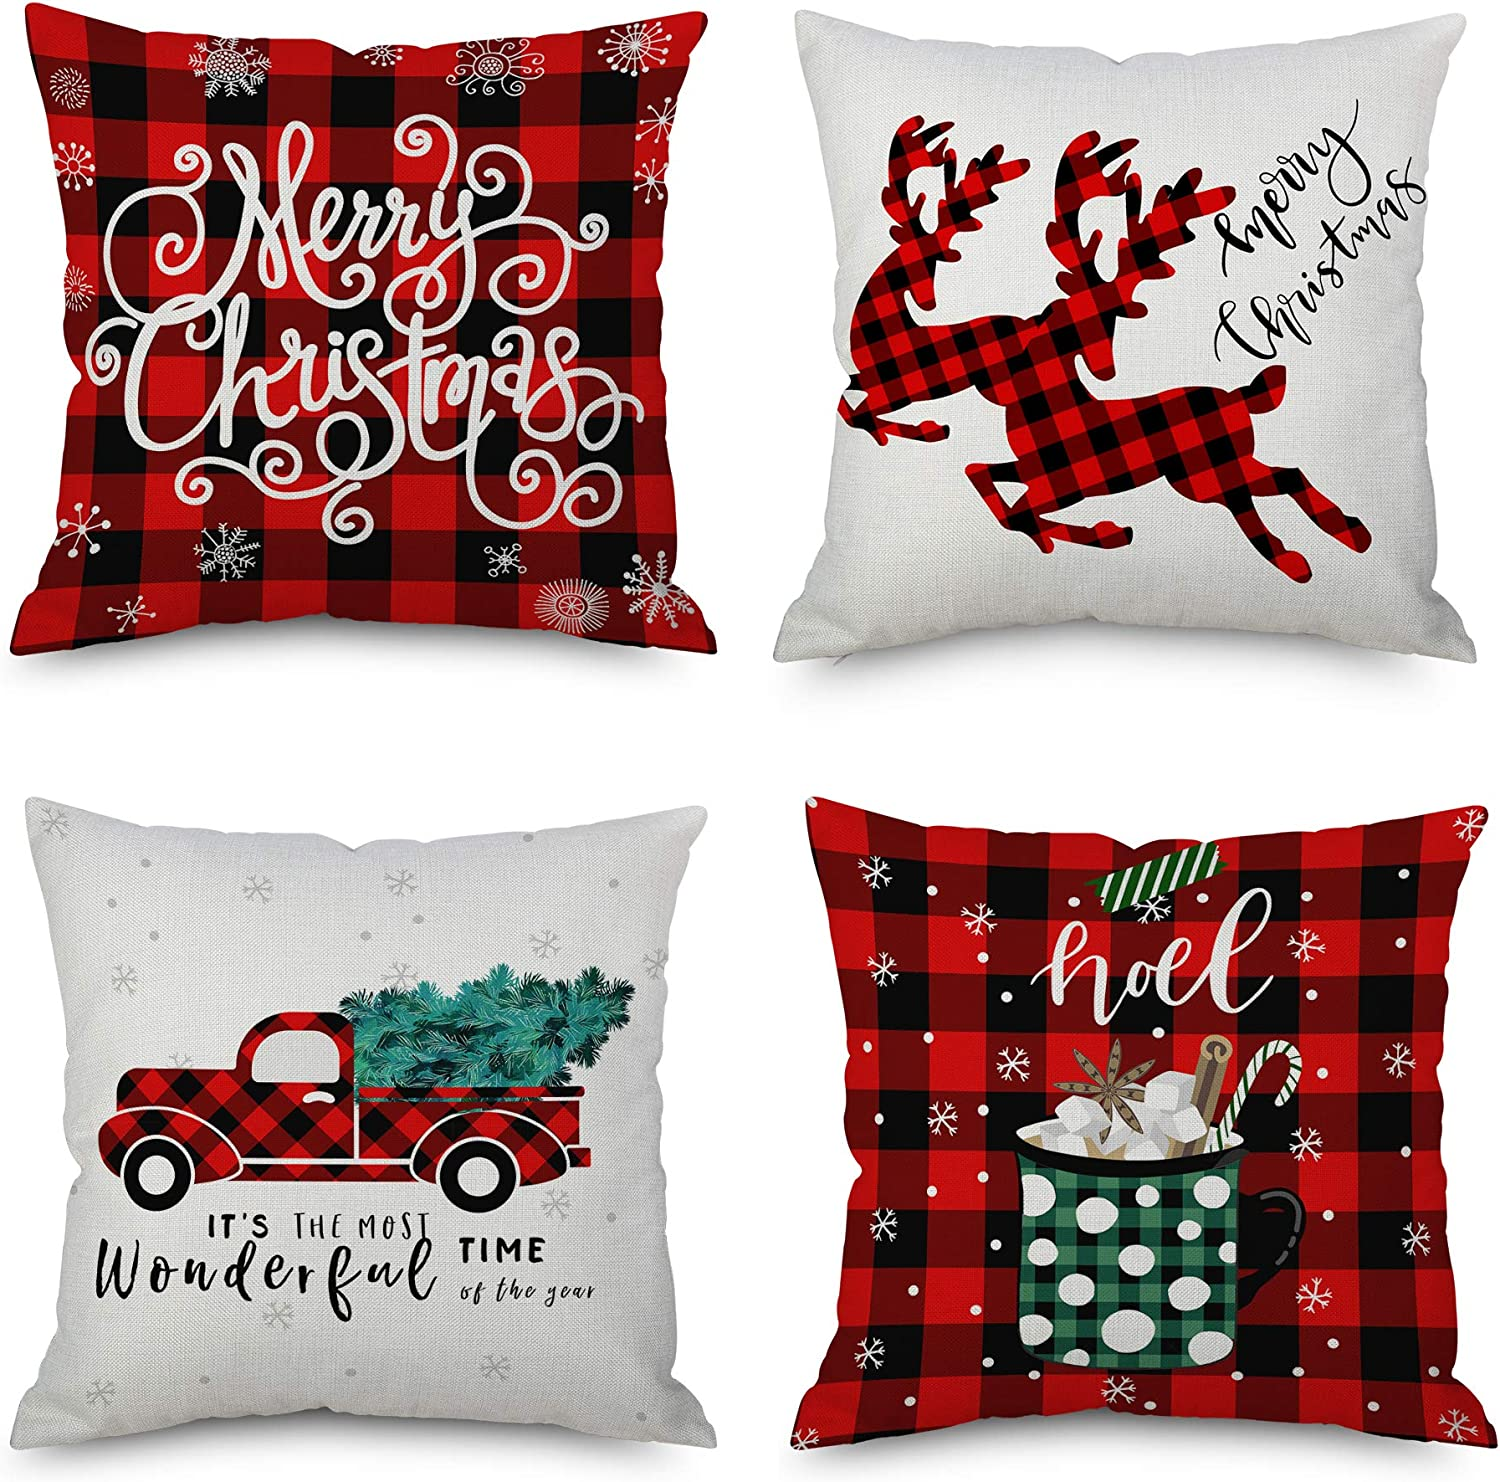 QoGoer Christmas Decorations Throw Pillow Covers 18 x 18 Inch Set of 4, Red Black Buffalo Plaids Merry Christmas Pillow Cases Cotton Linen Cushion Covers for Farmhouse, Xmas Home Decor, Bed and Couch